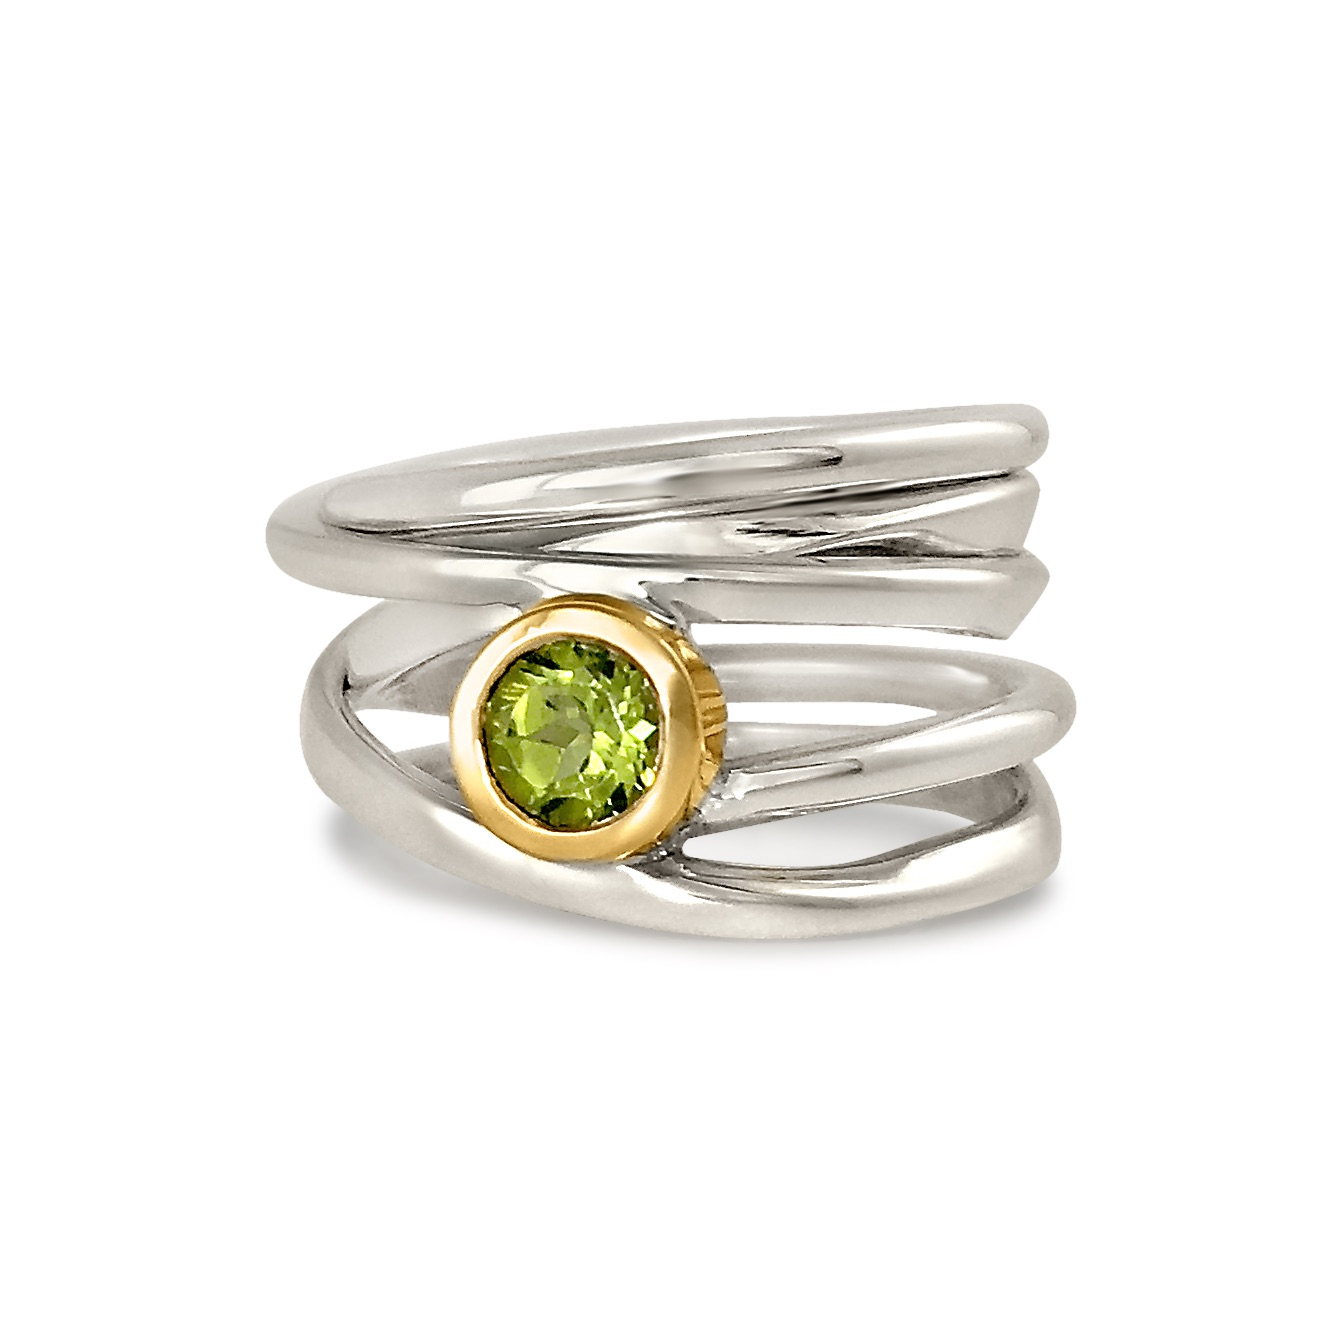 One-of-a-Kind #225 || Sterling Onefooter Ring with Peridot set in 18k Yellow-Gold Bezel, Size 7